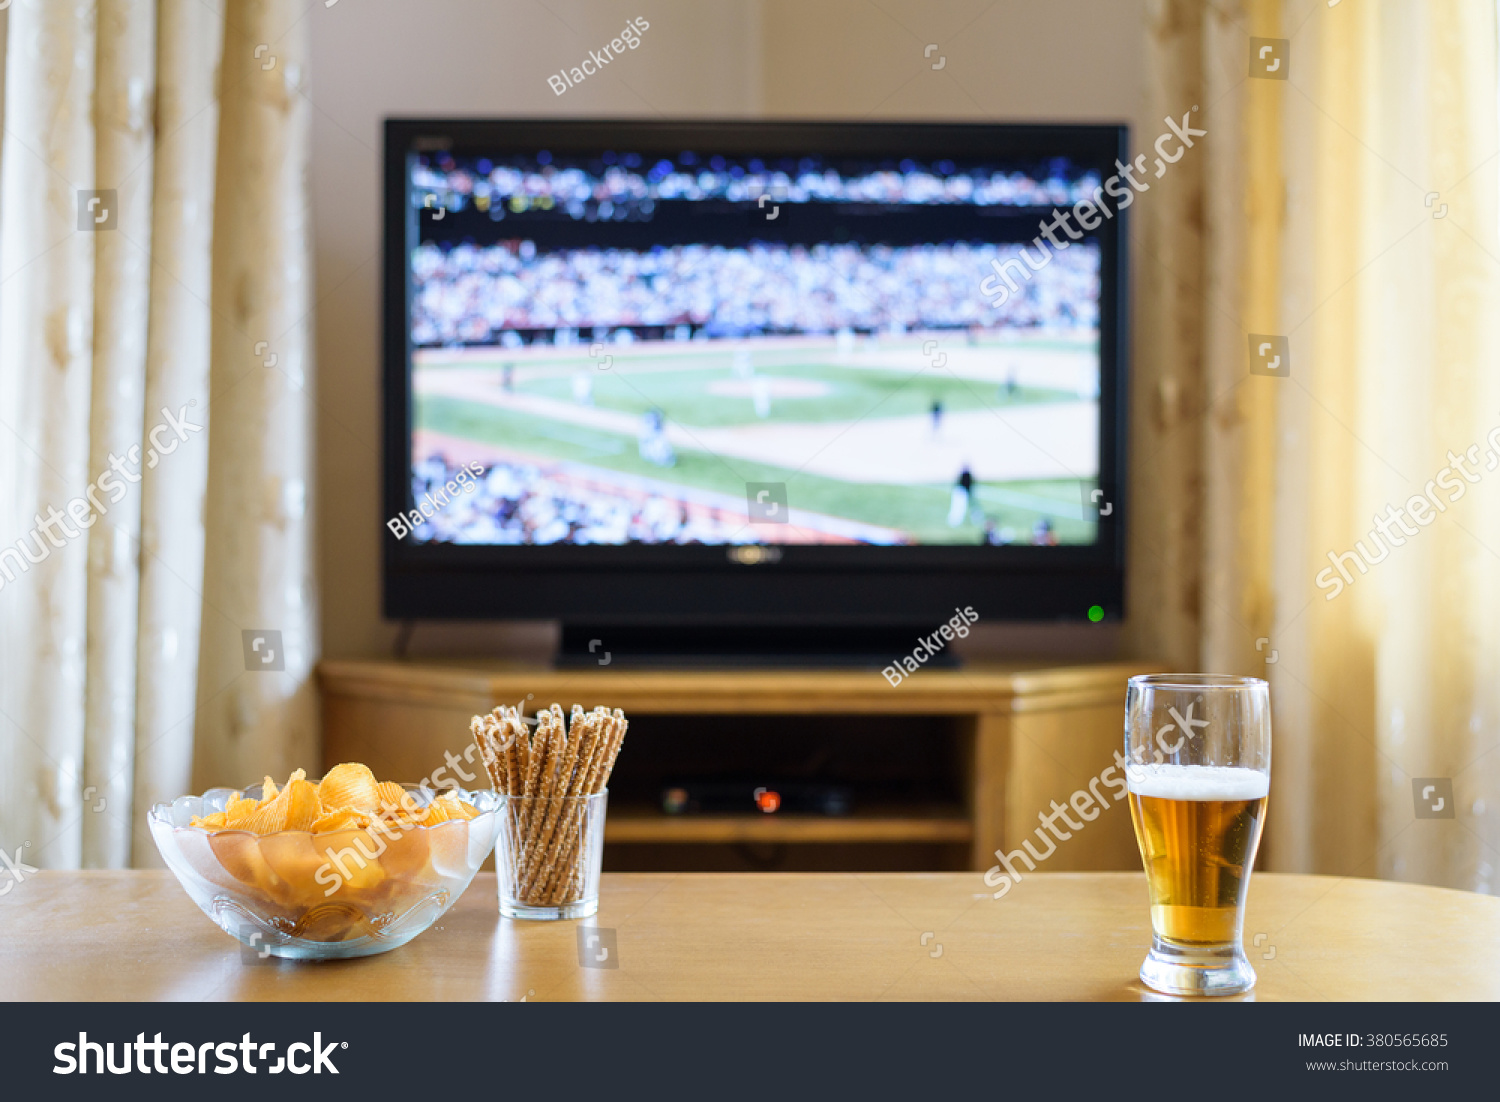 Television TV Watching Baseball Match With Snacks And Alcohol Lying On Table